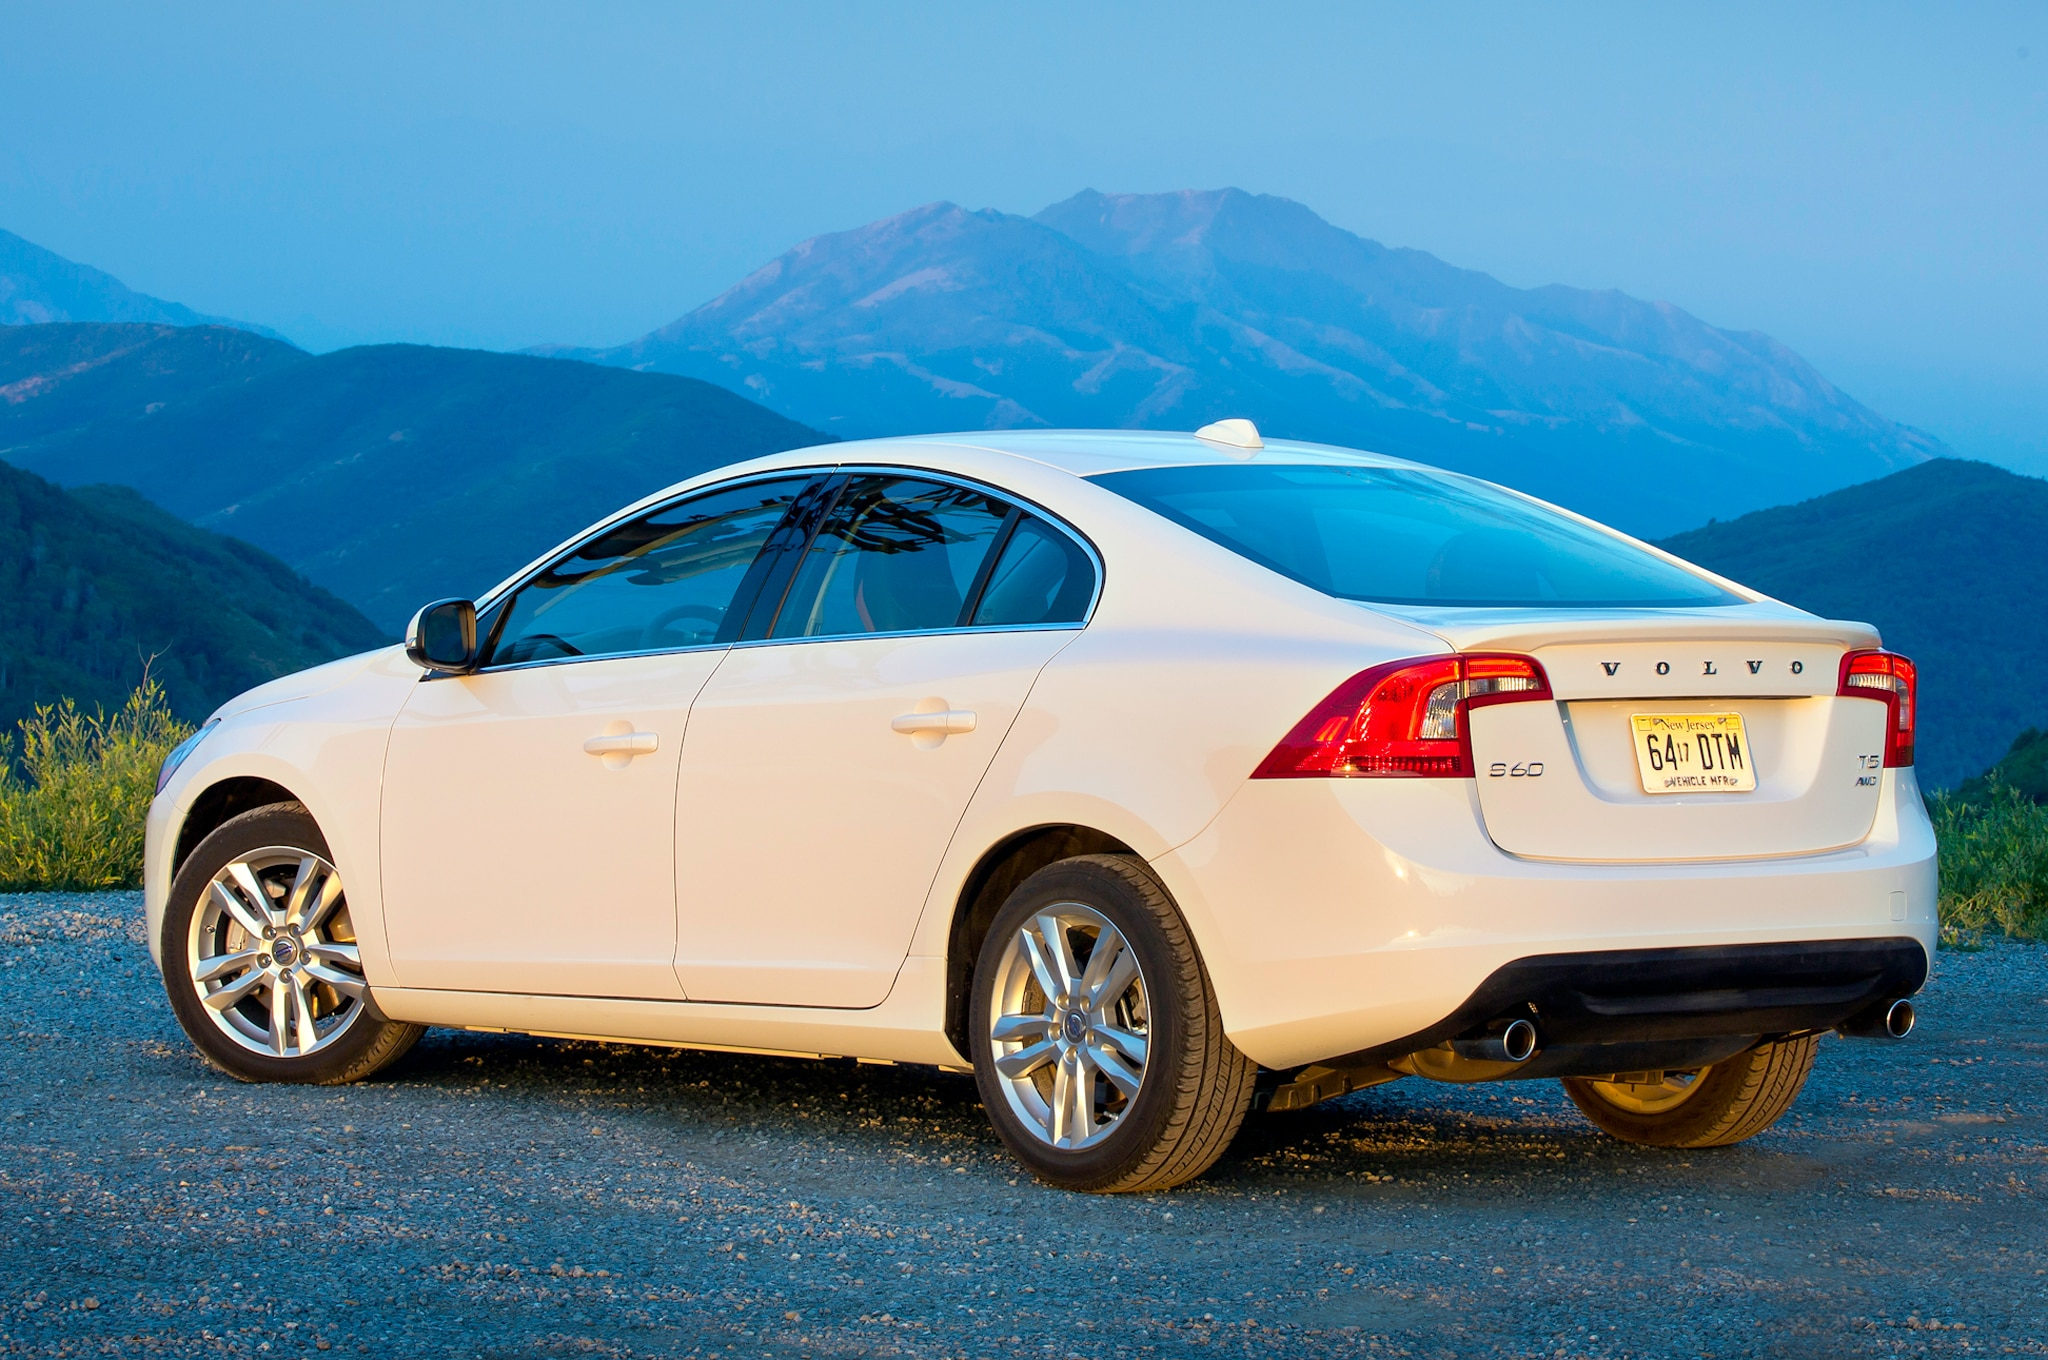 First Drive: 2013 Volvo S60 Polestar - Automobile Magazine